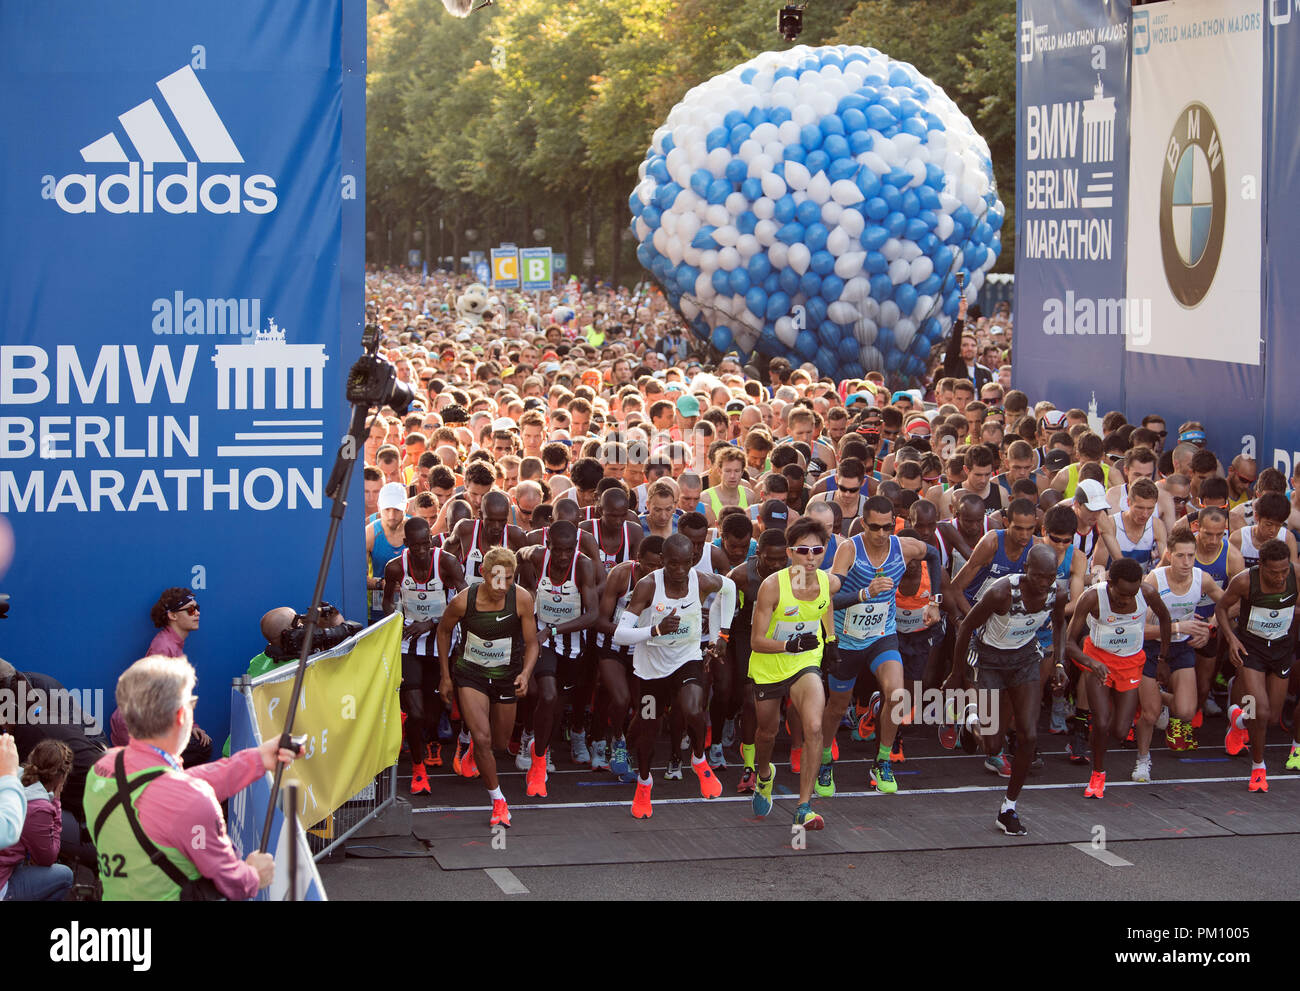 Berlin, Germany. 16 September 2018, Berlin: The elite runners starting the 45th BMW Berlin Marathon on the Strasse des 17 June. Photo: Soeren Stache/dpa Credit: dpa picture alliance/Alamy Live News - Stock Image